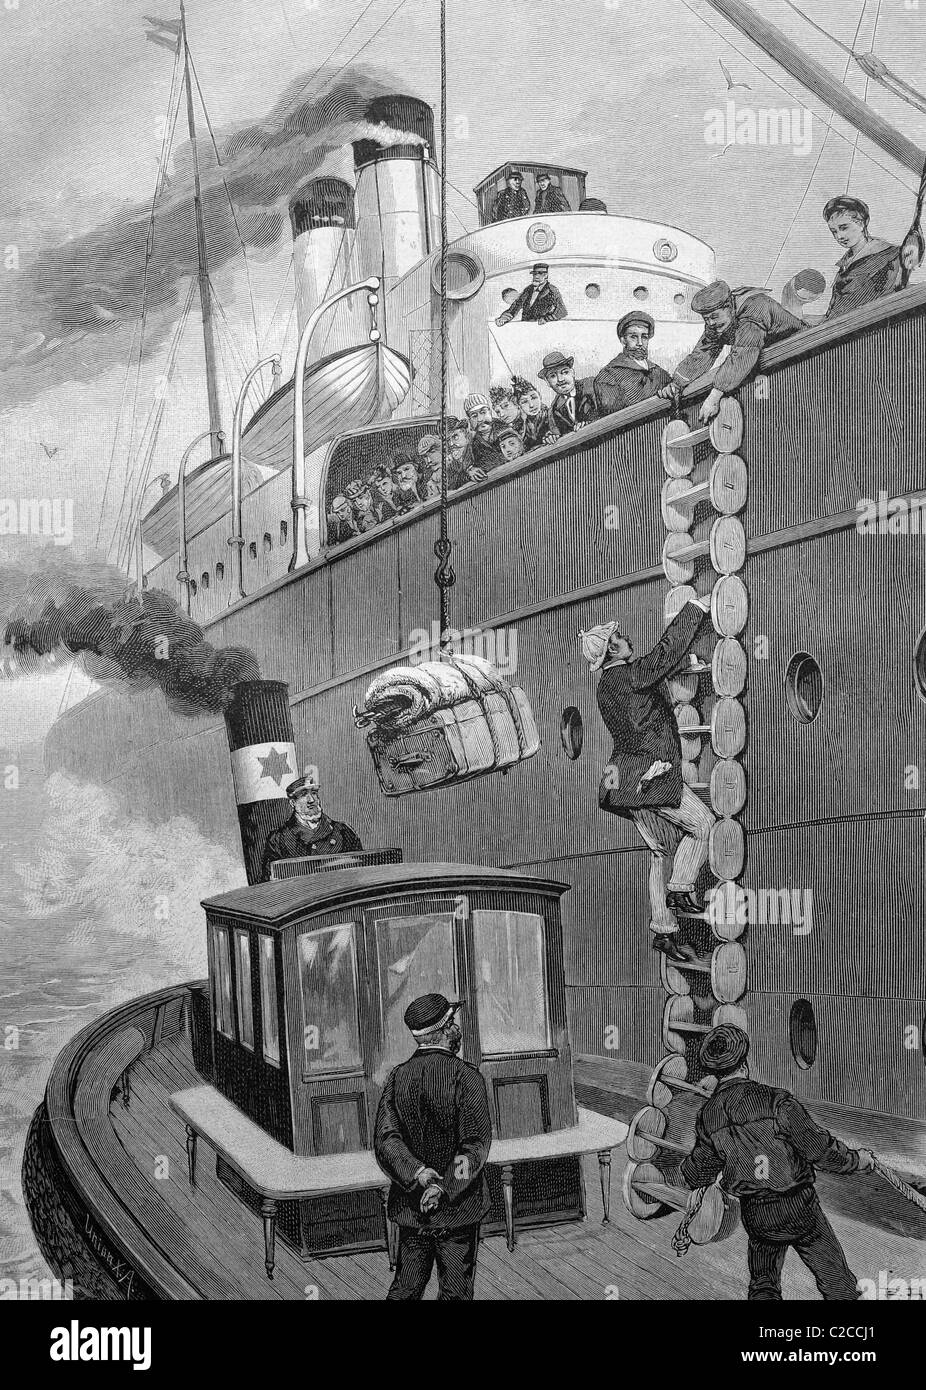 Delayed passengers boarding a ship, historical illustration, ca. 1893 - Stock Image